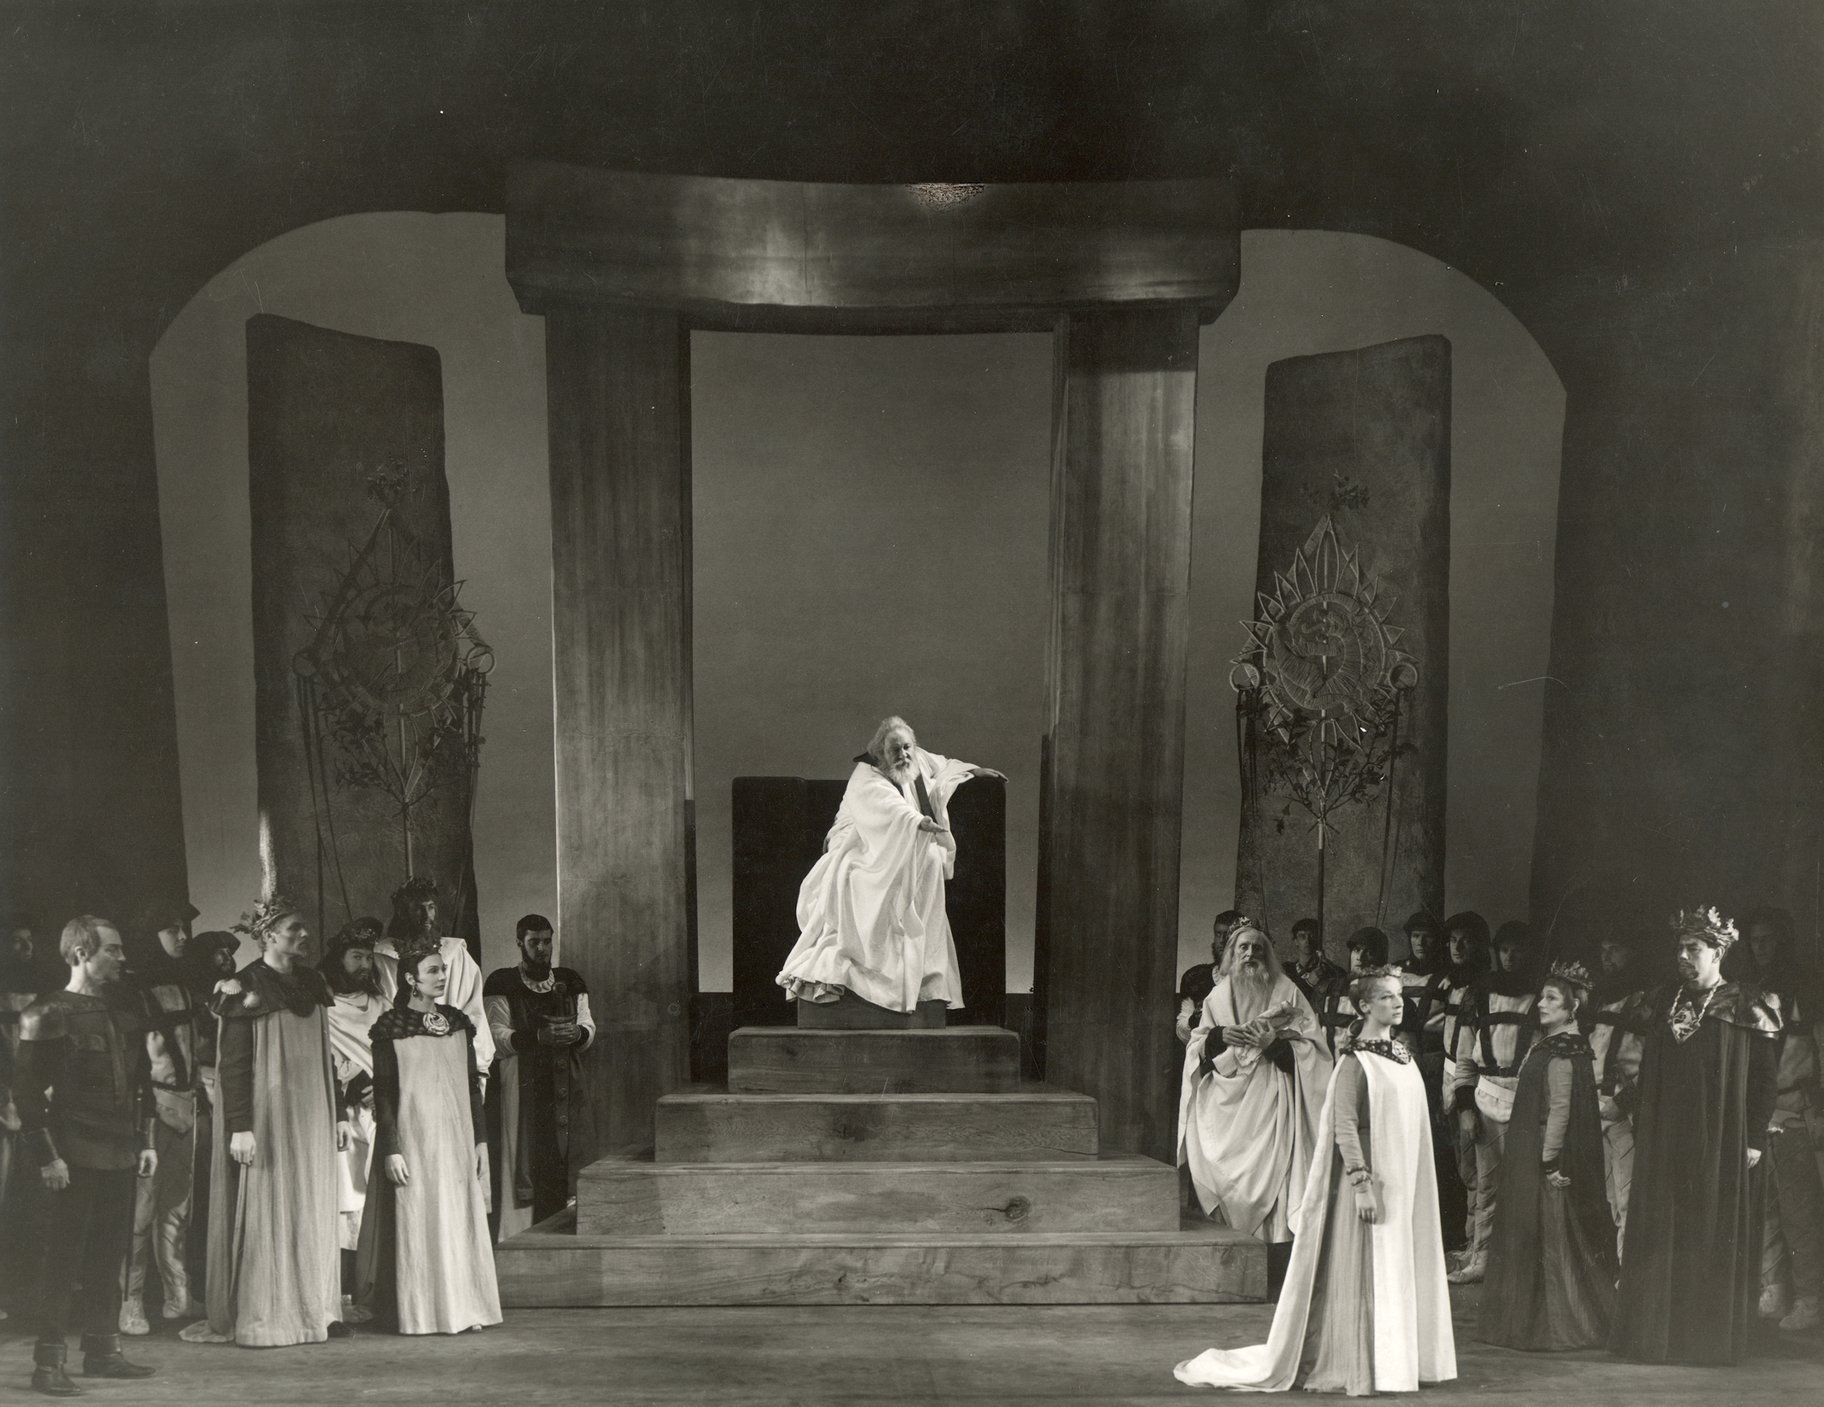 A king presides over his court, pointing an accusative finger at a woman walking away.